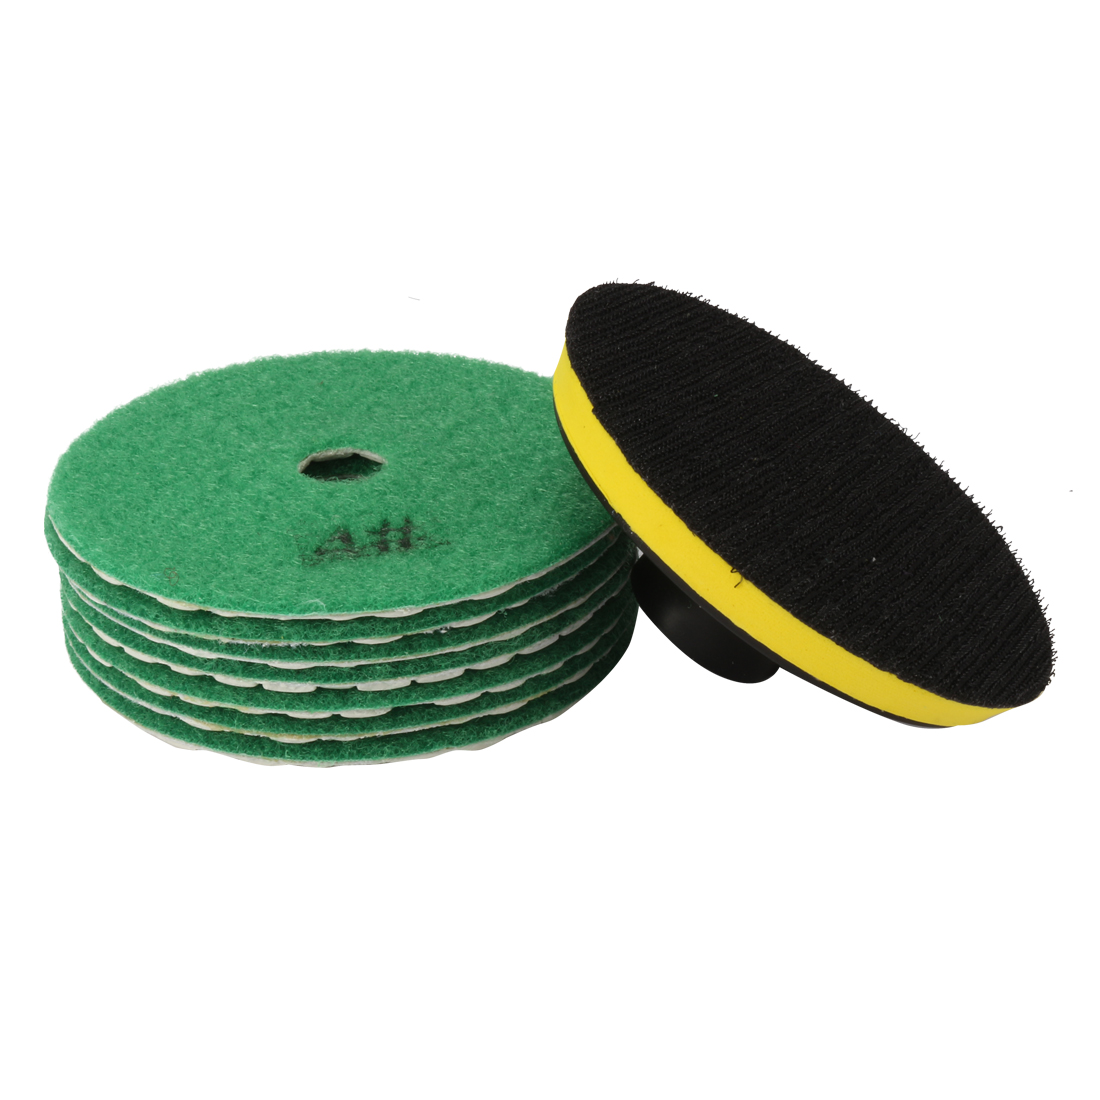 "4"" Diamond Dry Polishing Pad Grit 1000 7PCS for Sanding Marble Granite Stone"